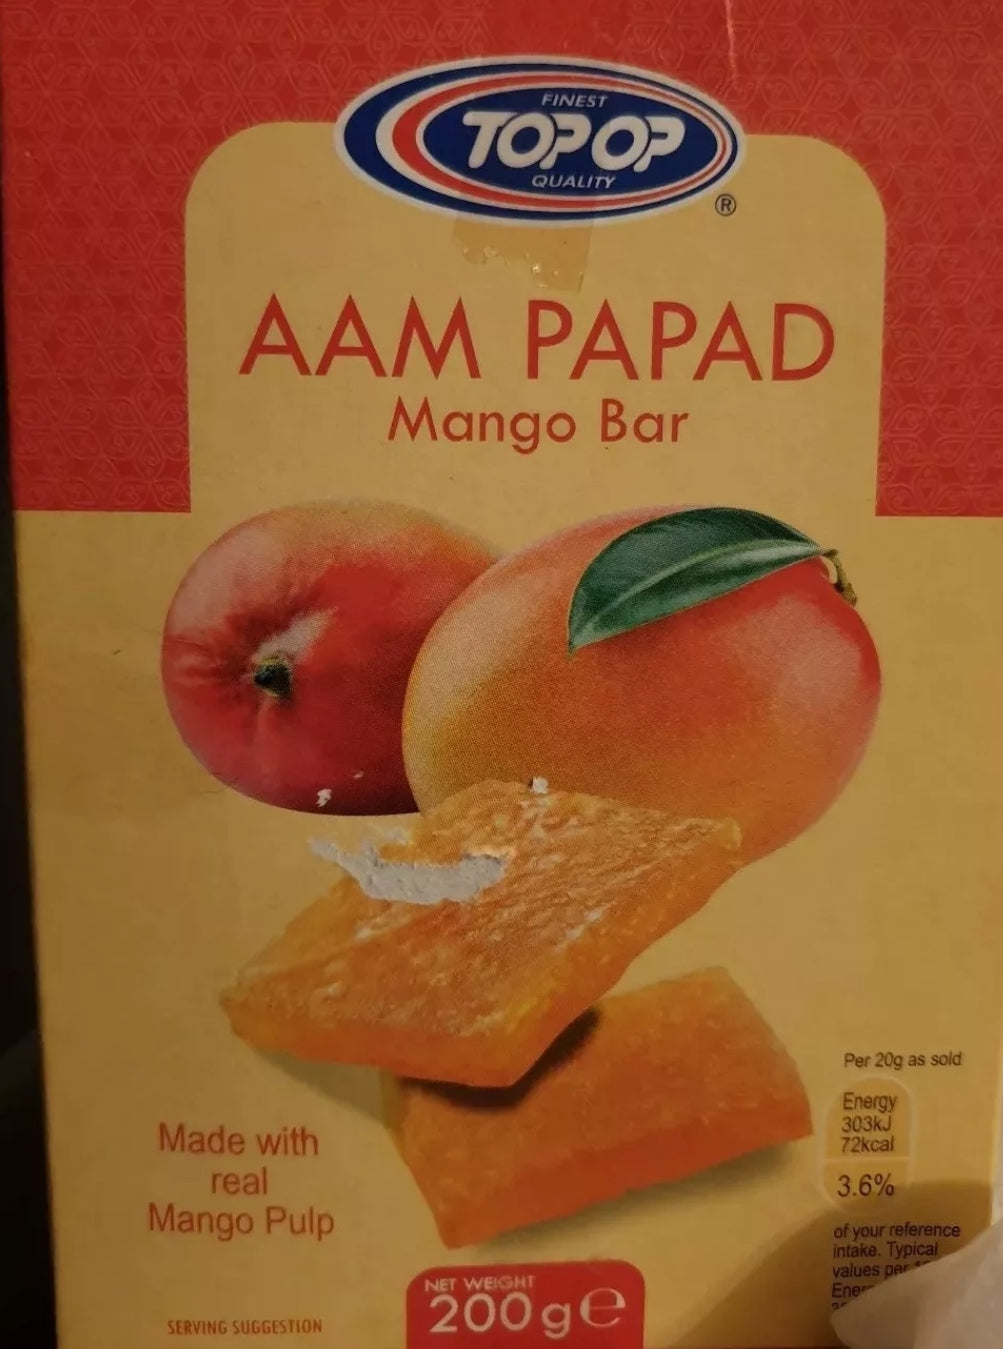 Topop AAM PAPAD MANGO BAR  200G PACK